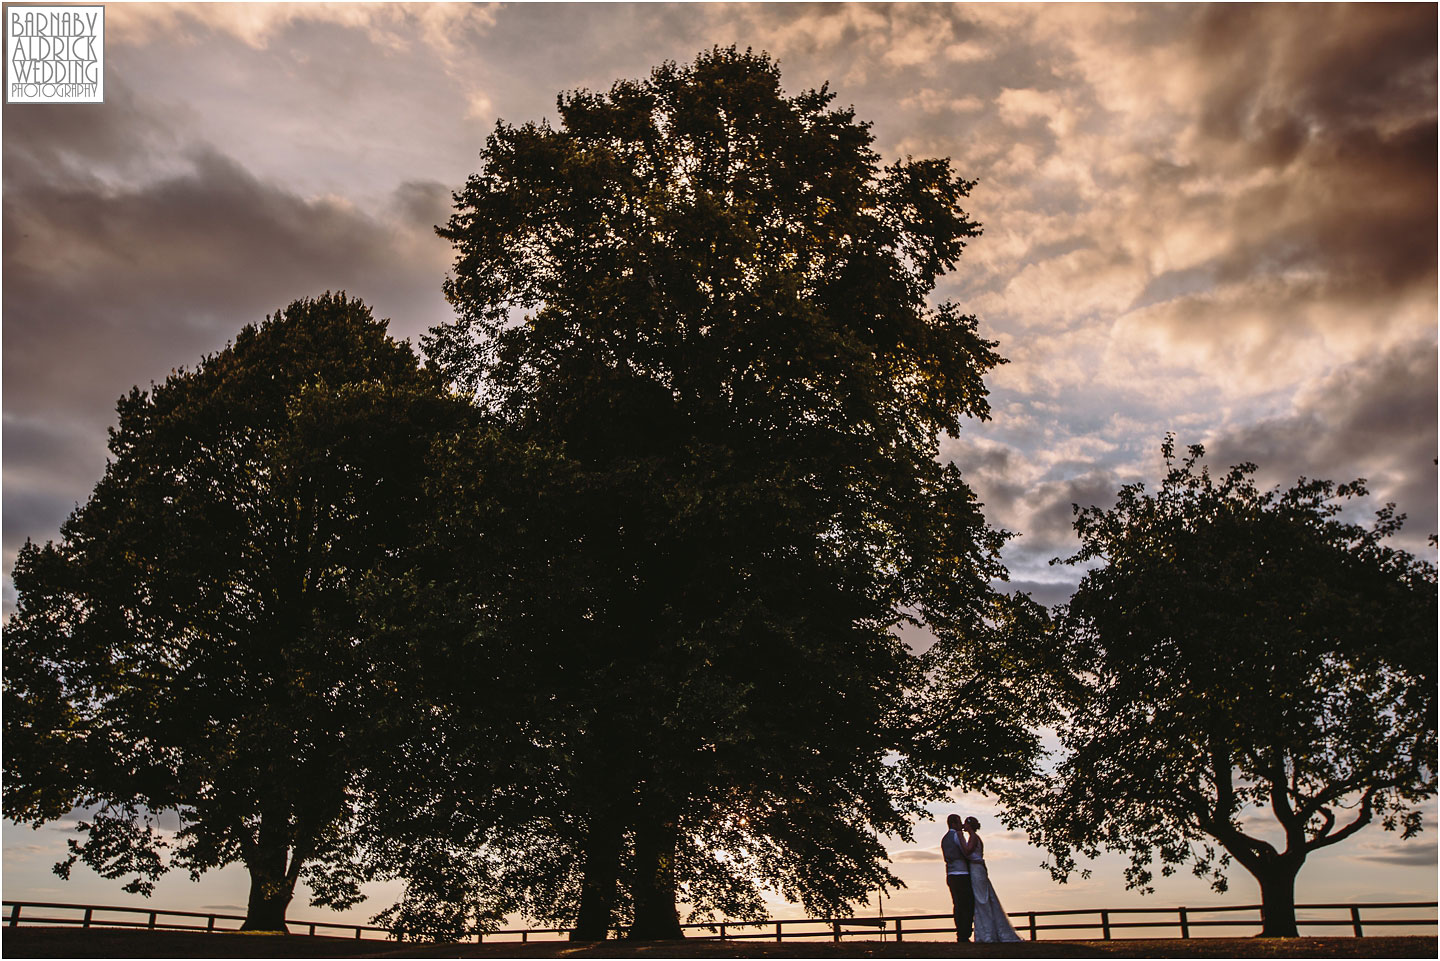 Sunset wedding portait at Barmbyfields Barn wedding venue near York